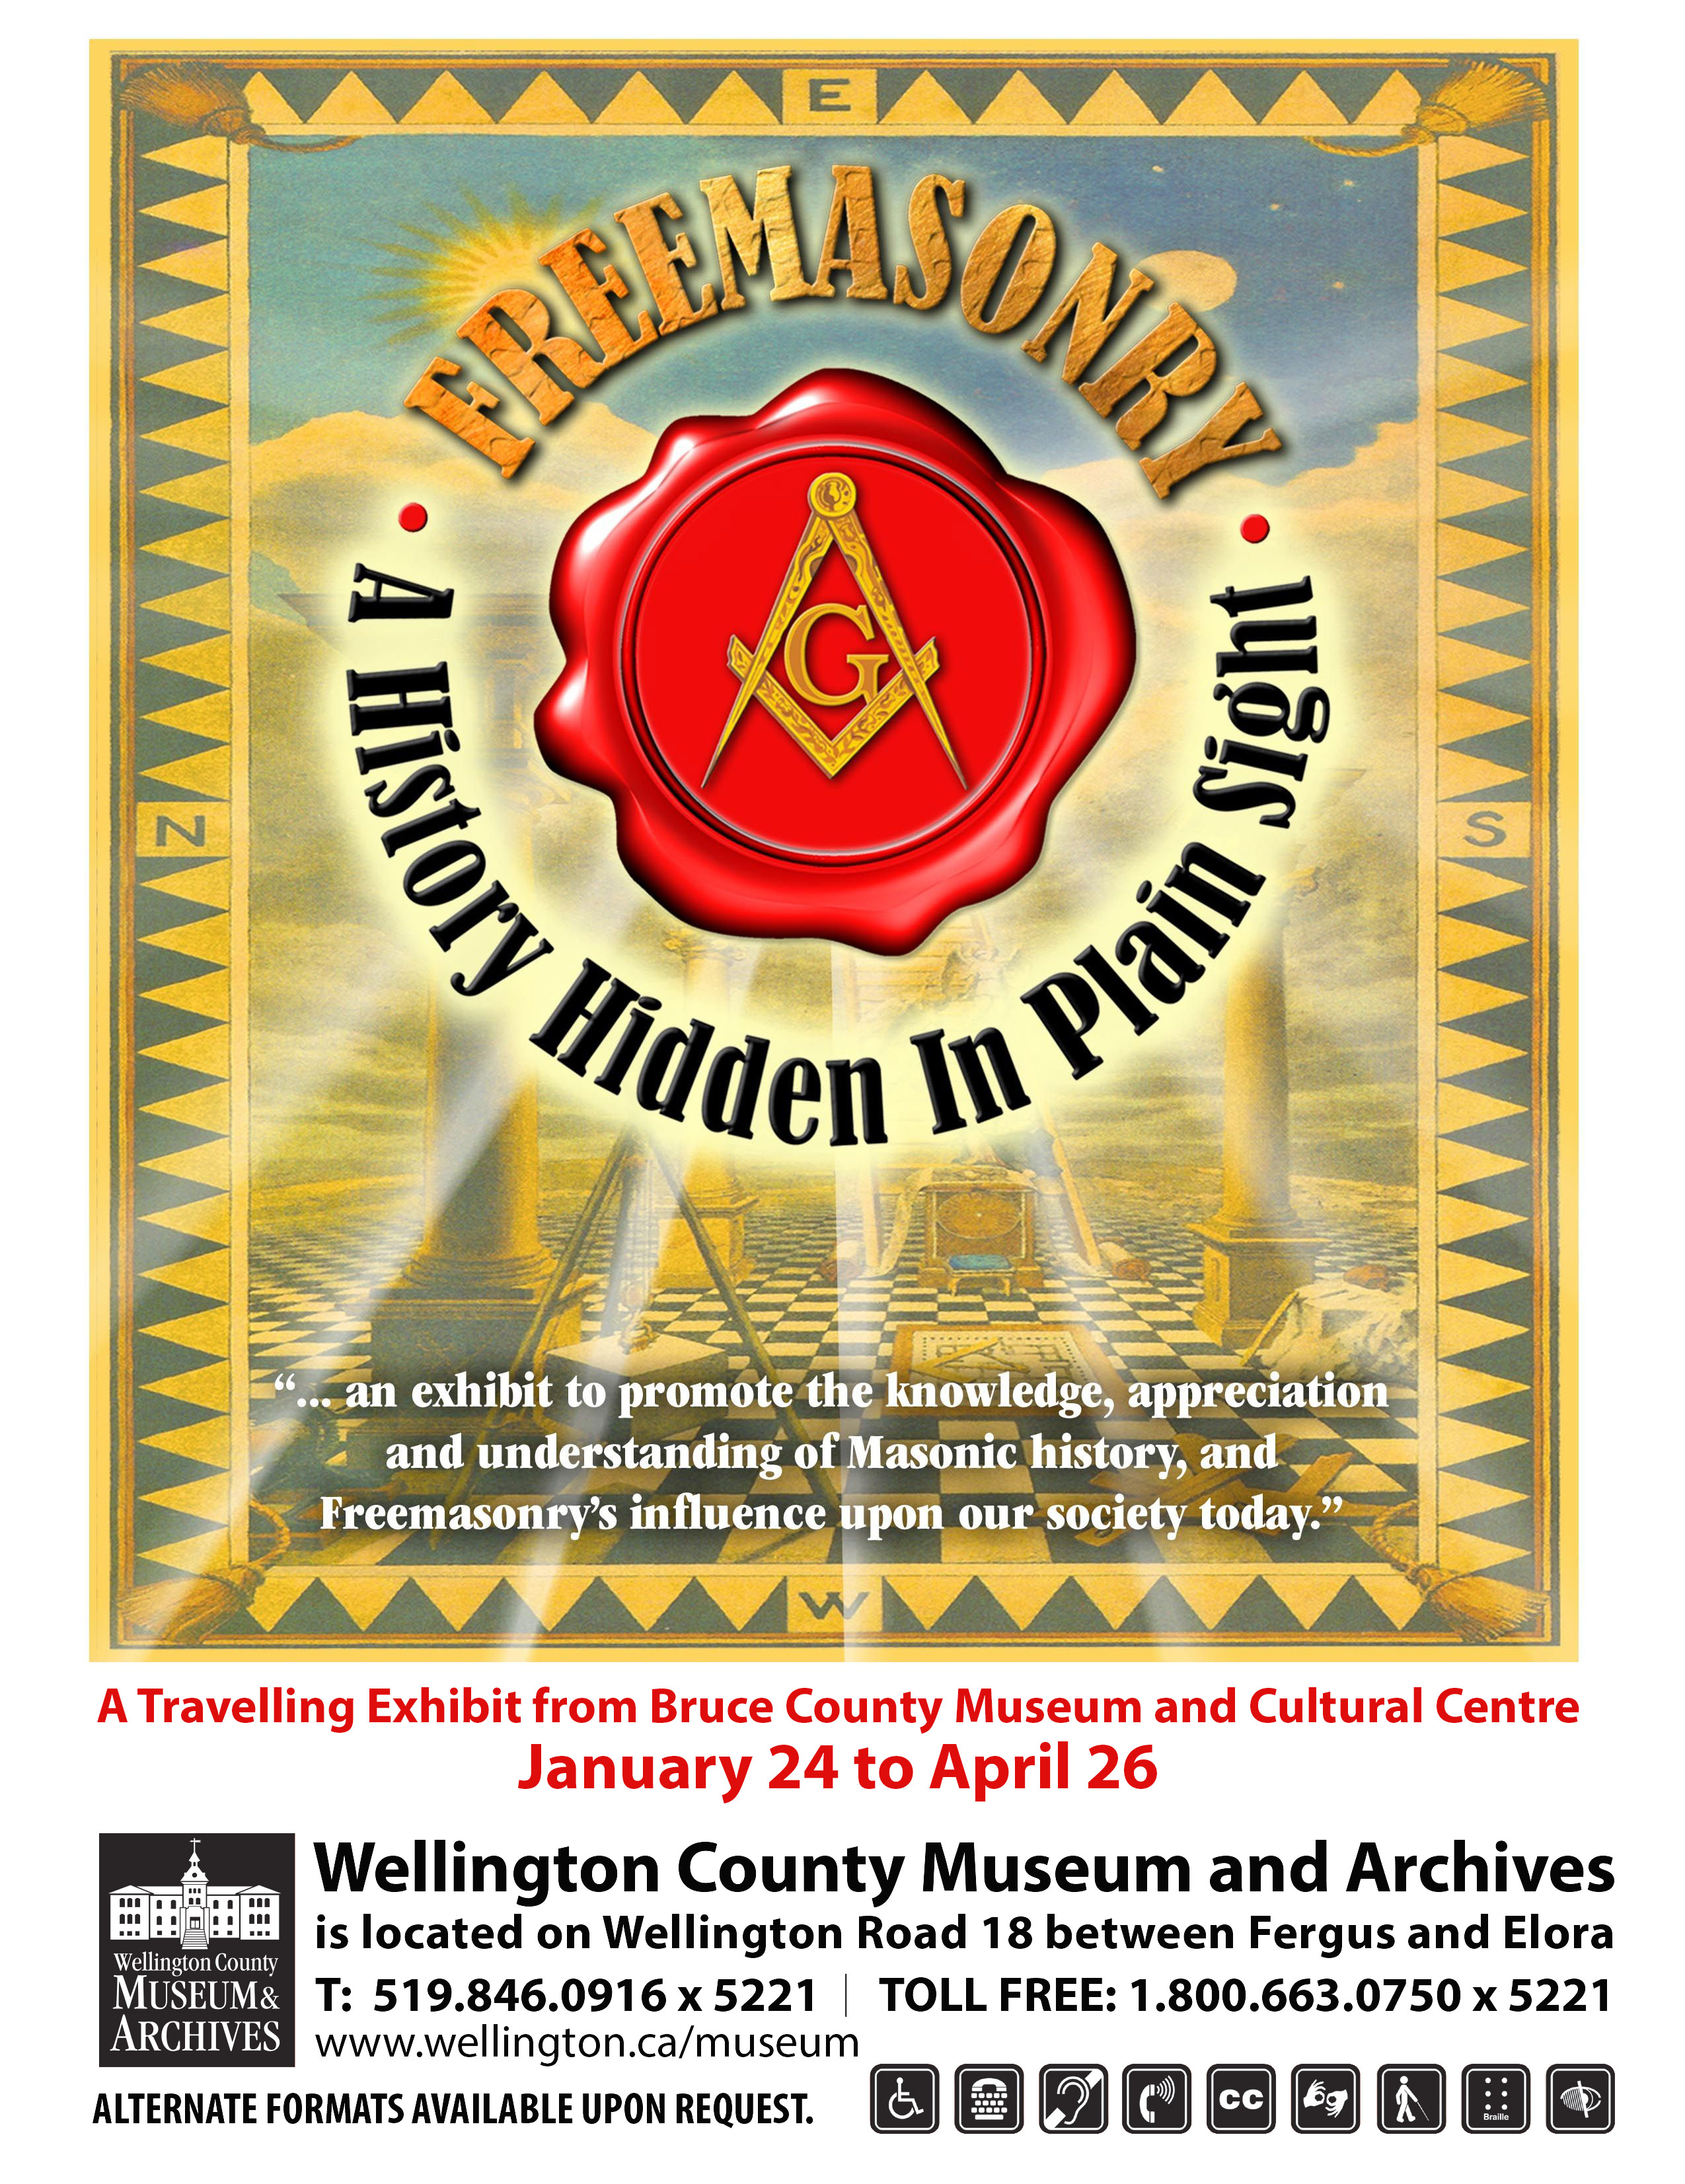 Image of the Freemasonry Poster